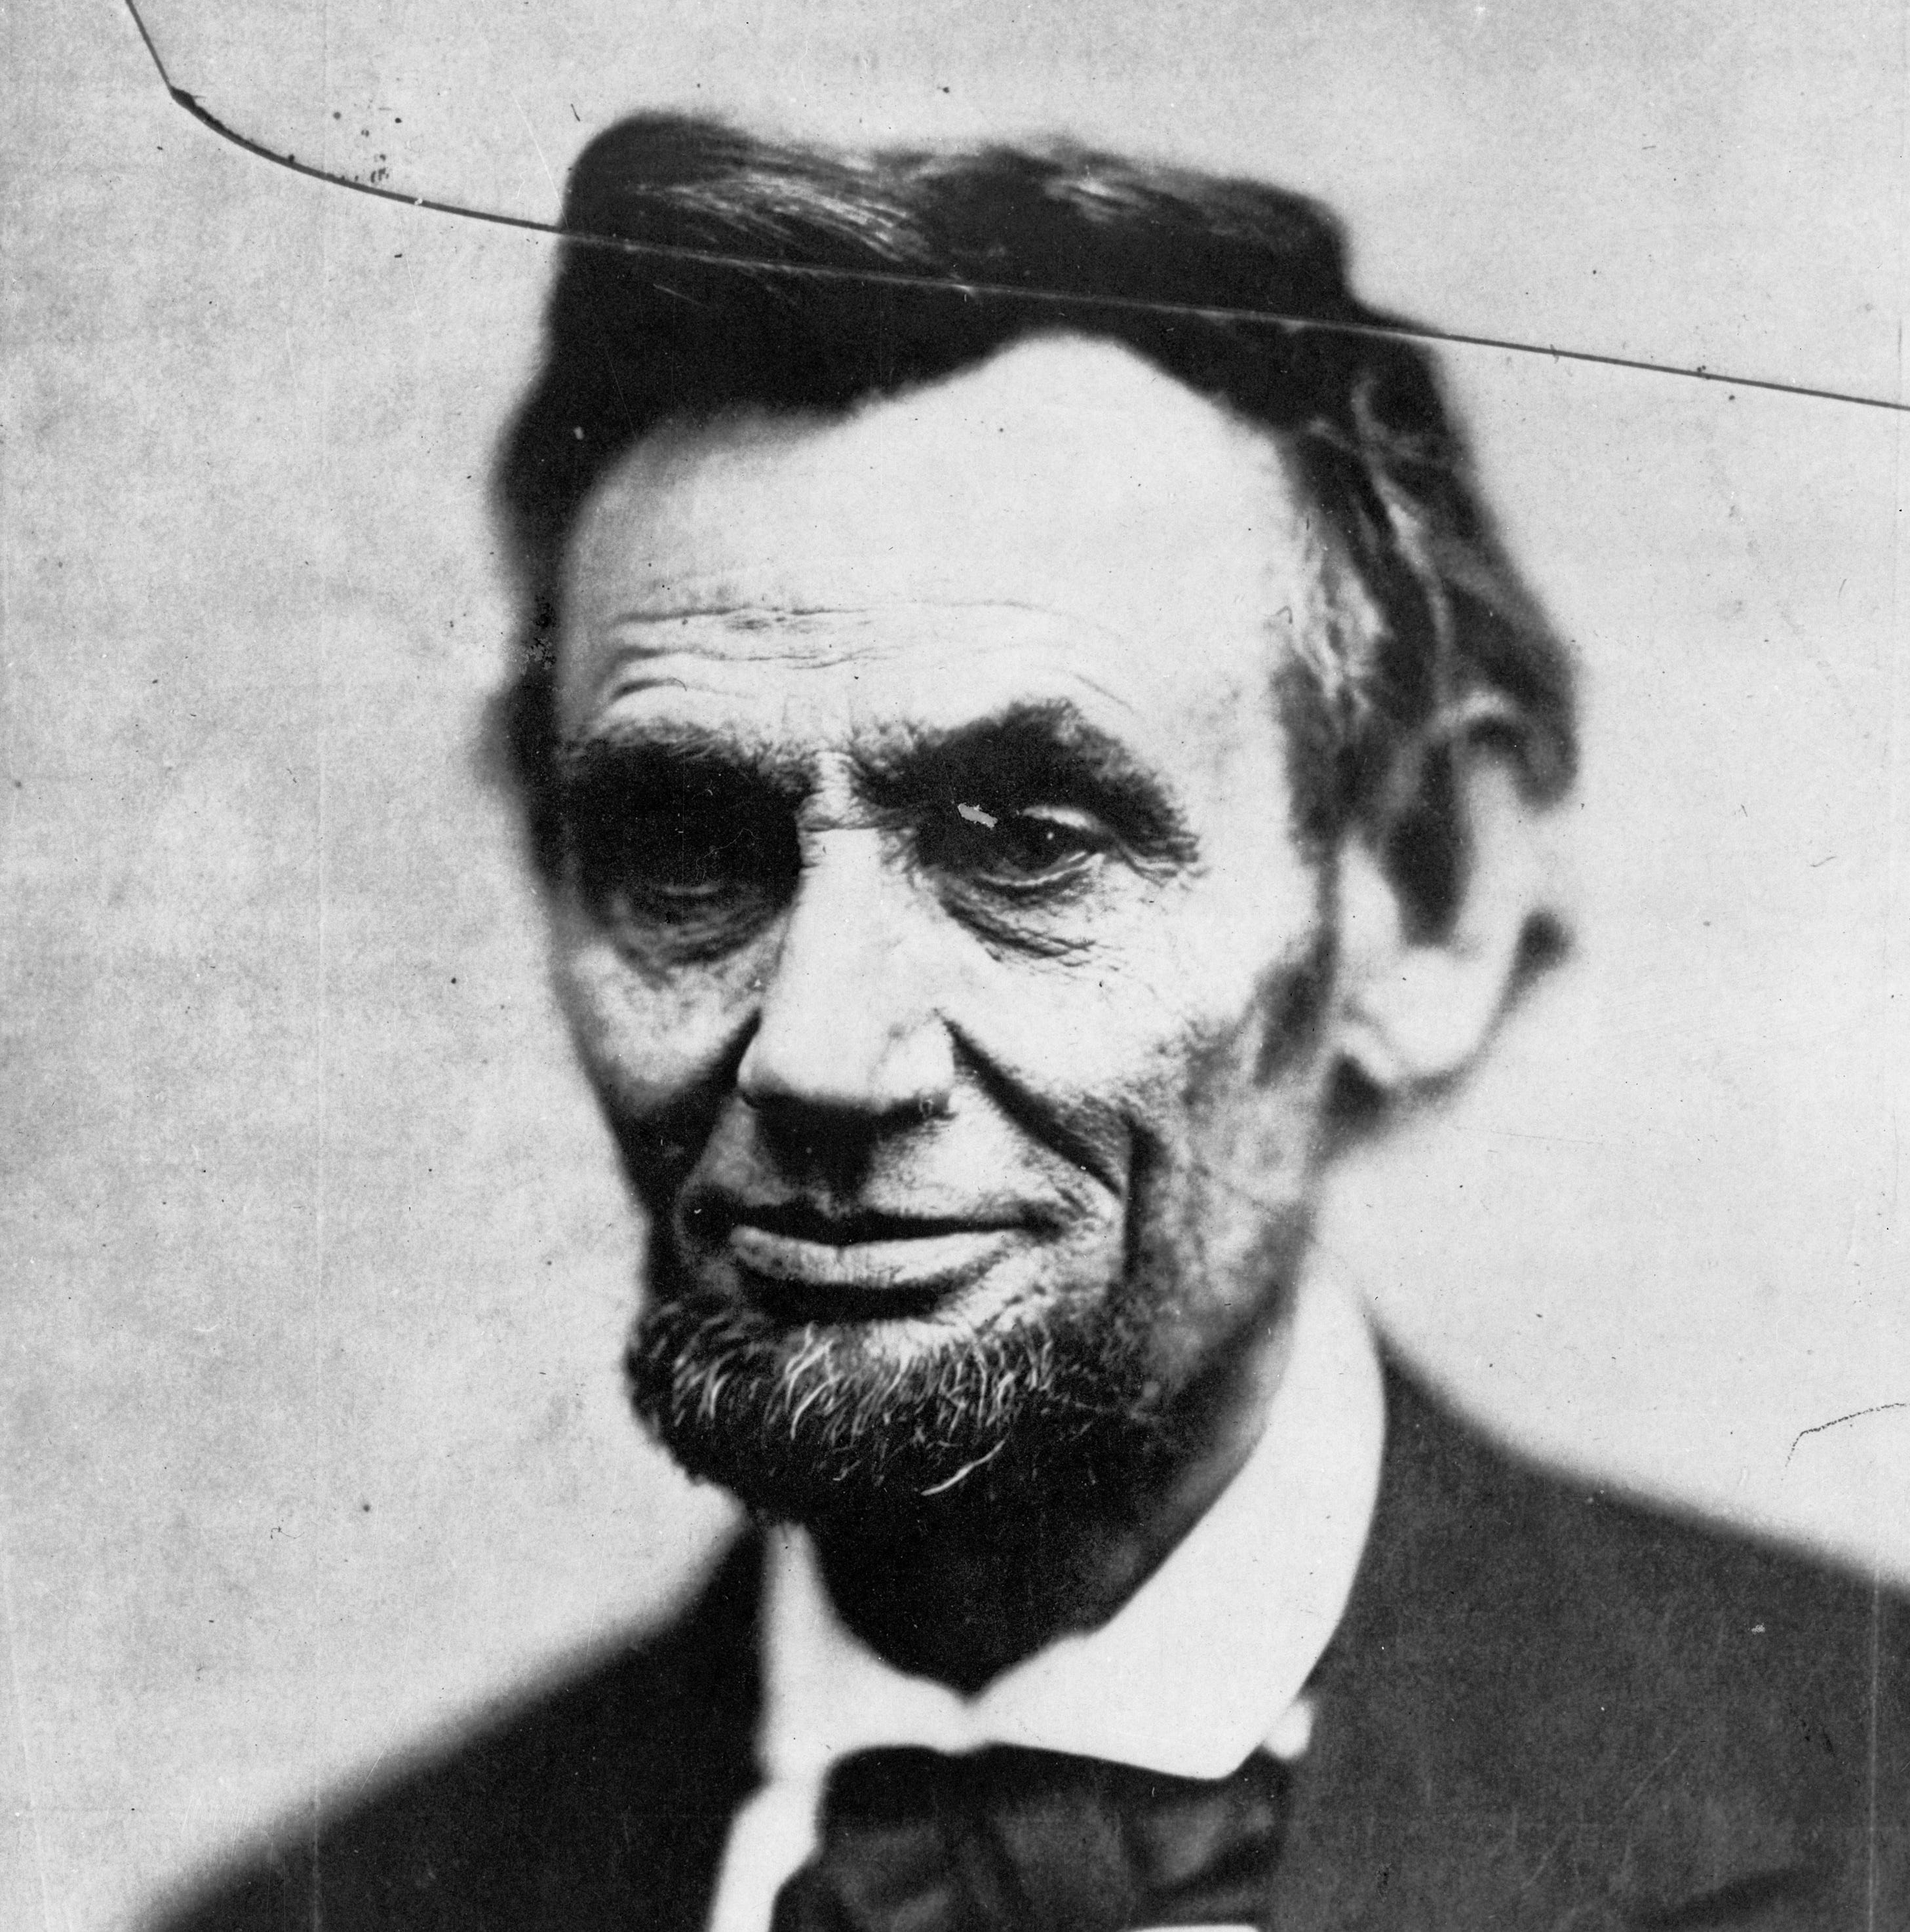 Abraham Lincoln: Growing into greatness